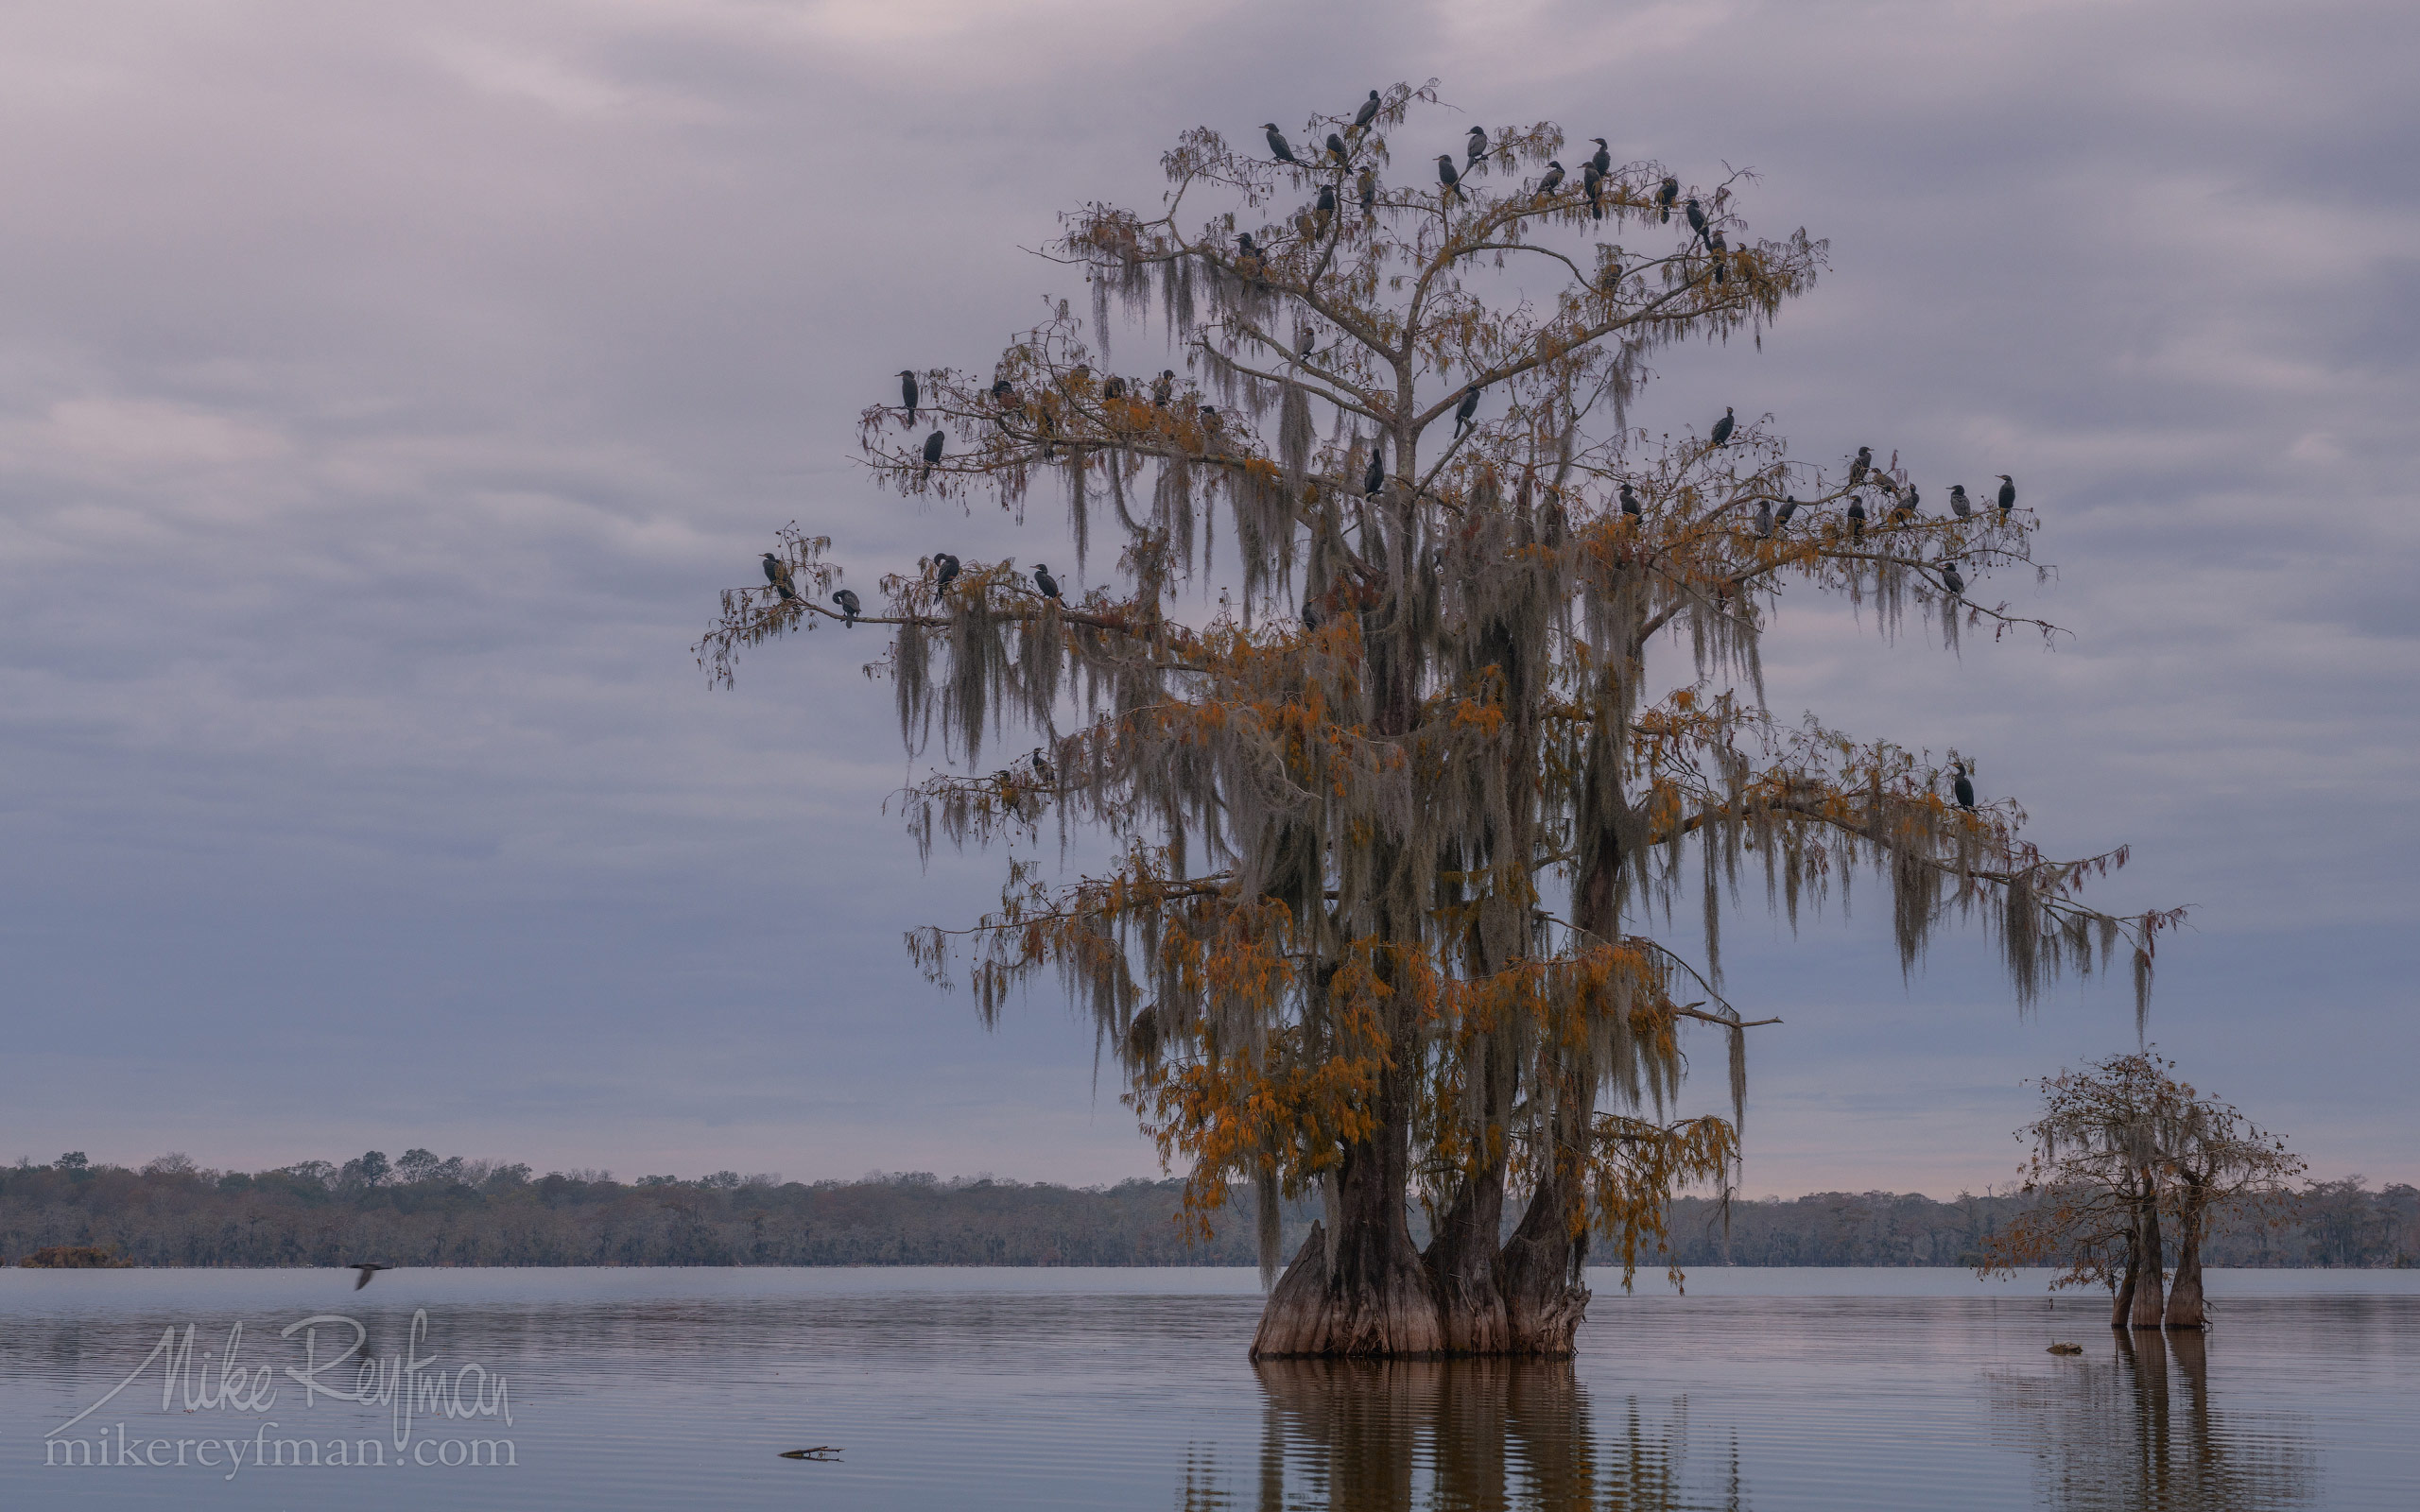 A flock of Double-crested Cormorants on the Bald Cypress tree. Lake Martin, Louisiana, US 020-LT1-50A2667.jpg - Bold Cypress and Tupelo Trees in the swamps of Atchafalaya River Basin. Caddo, Martin and Fousse Lakes. Texas/Louisiana, USA. - Mike Reyfman Photography